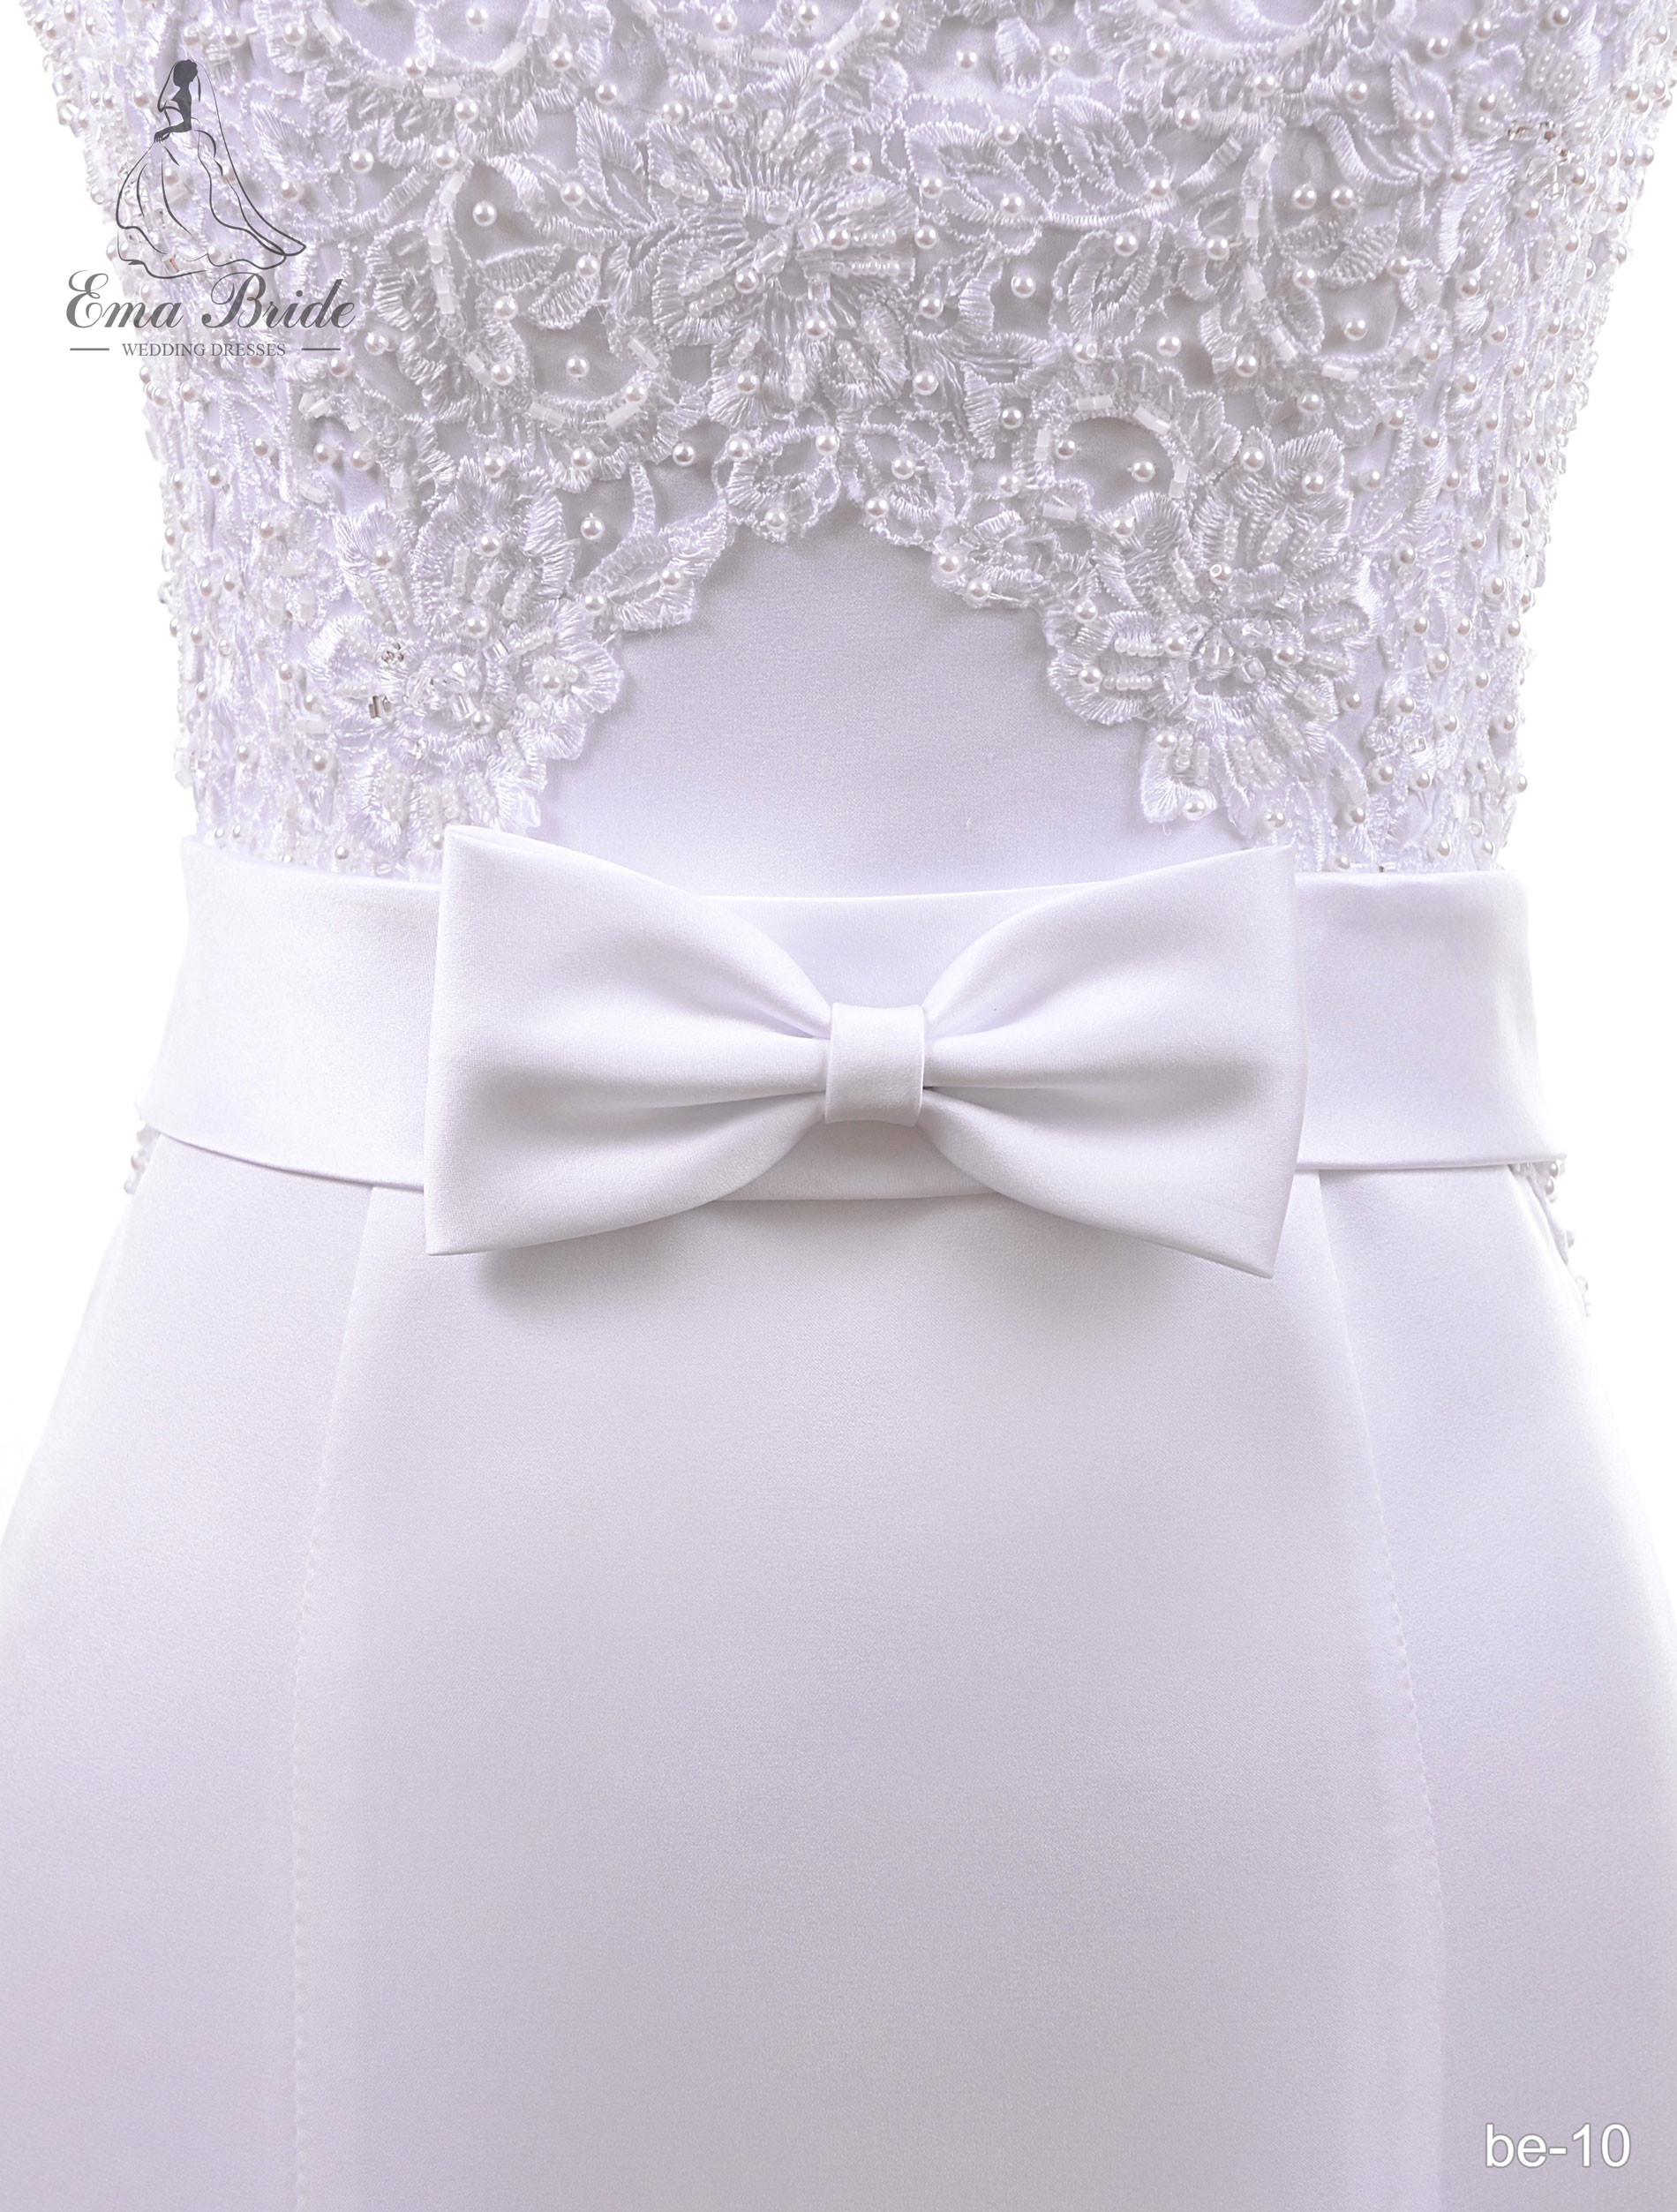 A belt for a wedding dress Be-10